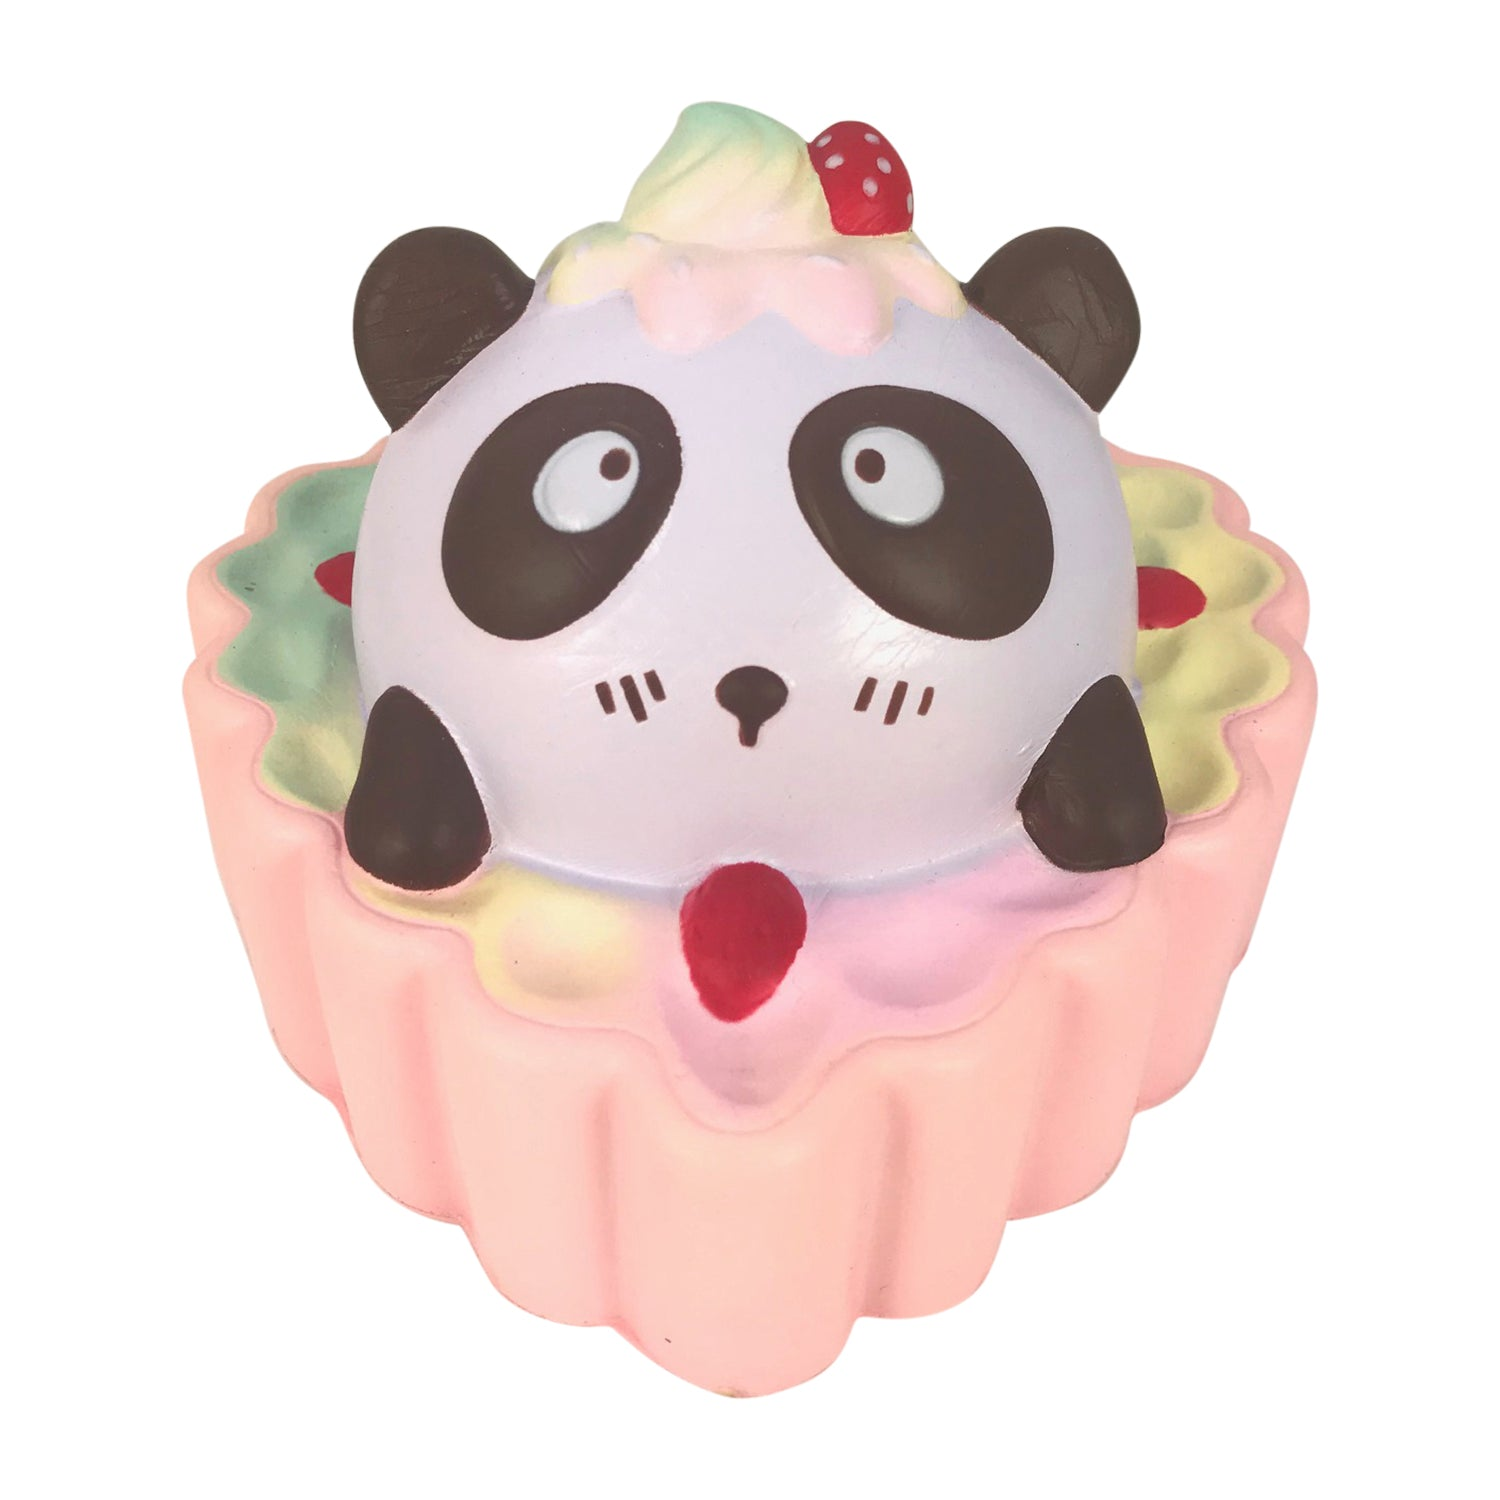 SCENTED Heart Sweet PANDA Fruit TART Squishy!